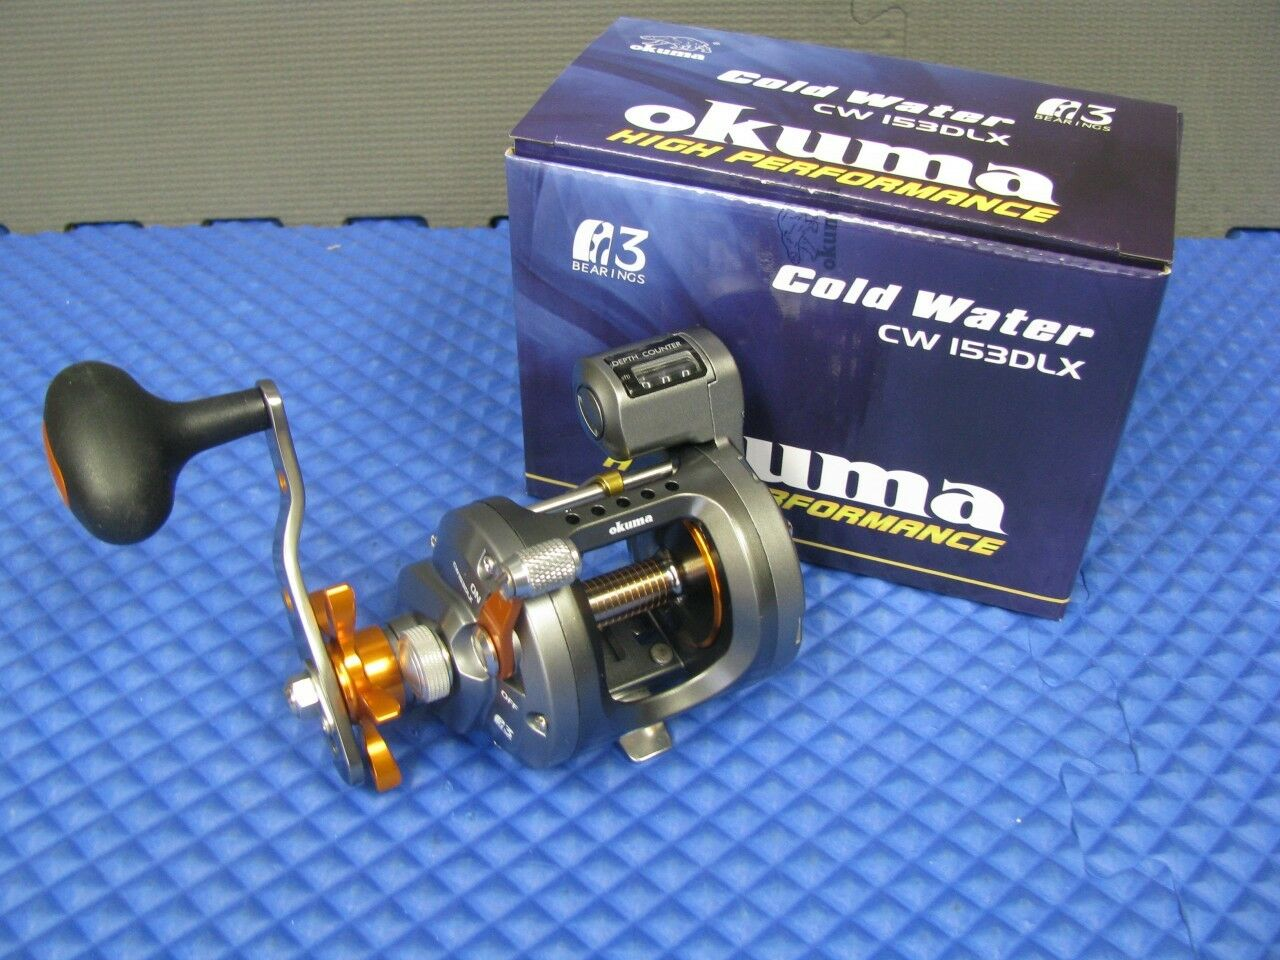 Okuma Cold Water  Left Hand Trolling Reel with Line Counter CW 153DLX  free shipping on all orders